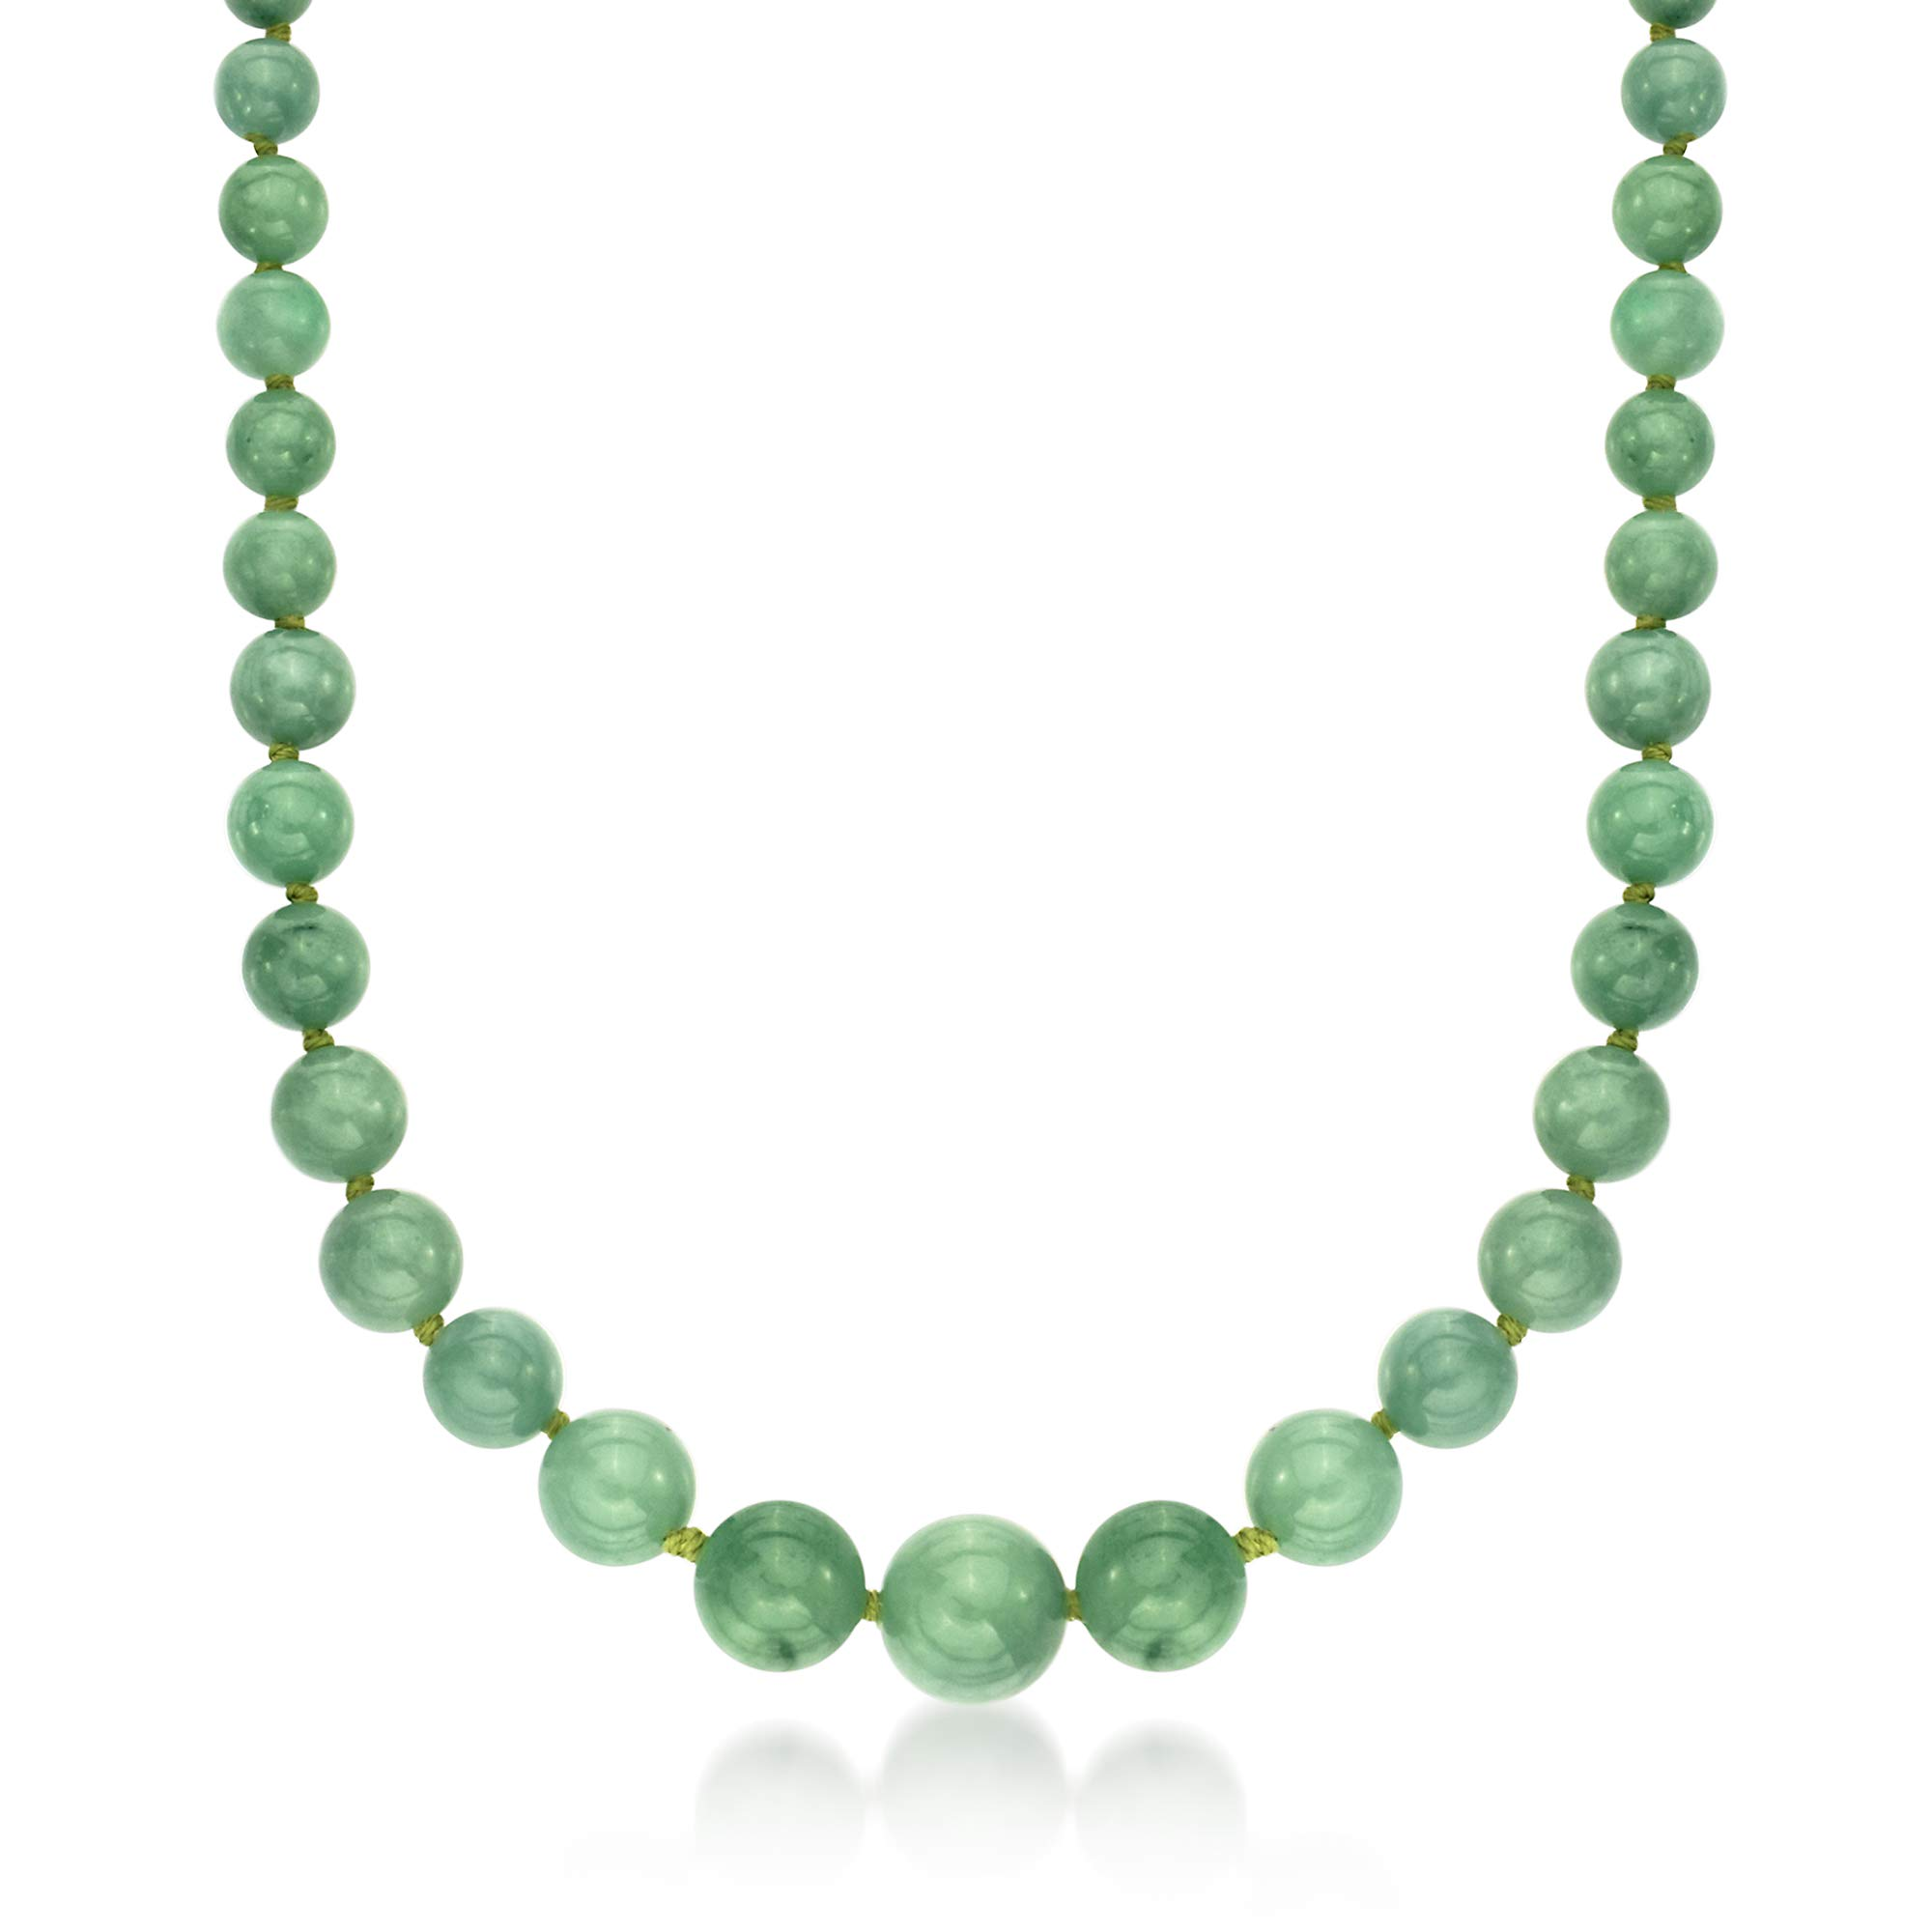 Ross-Simons 6-13mm Graduated Green Jade Bead Necklace With 14kt Yellow Gold by Ross-Simons (Image #1)